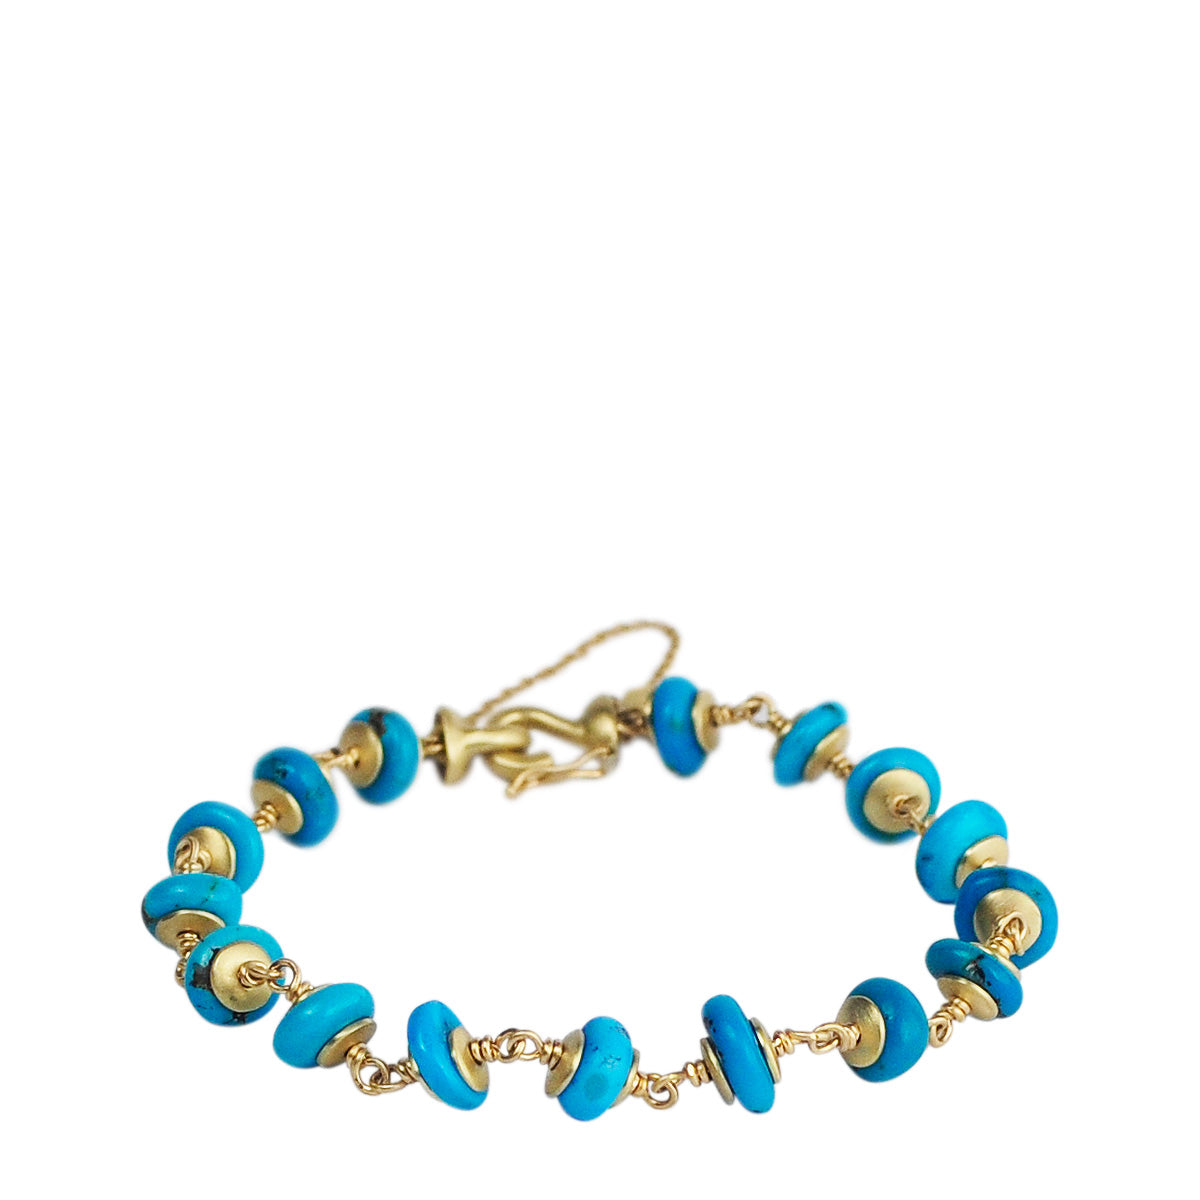 18K Gold Persian Turquoise Rondelle Bead Bracelet on Wire